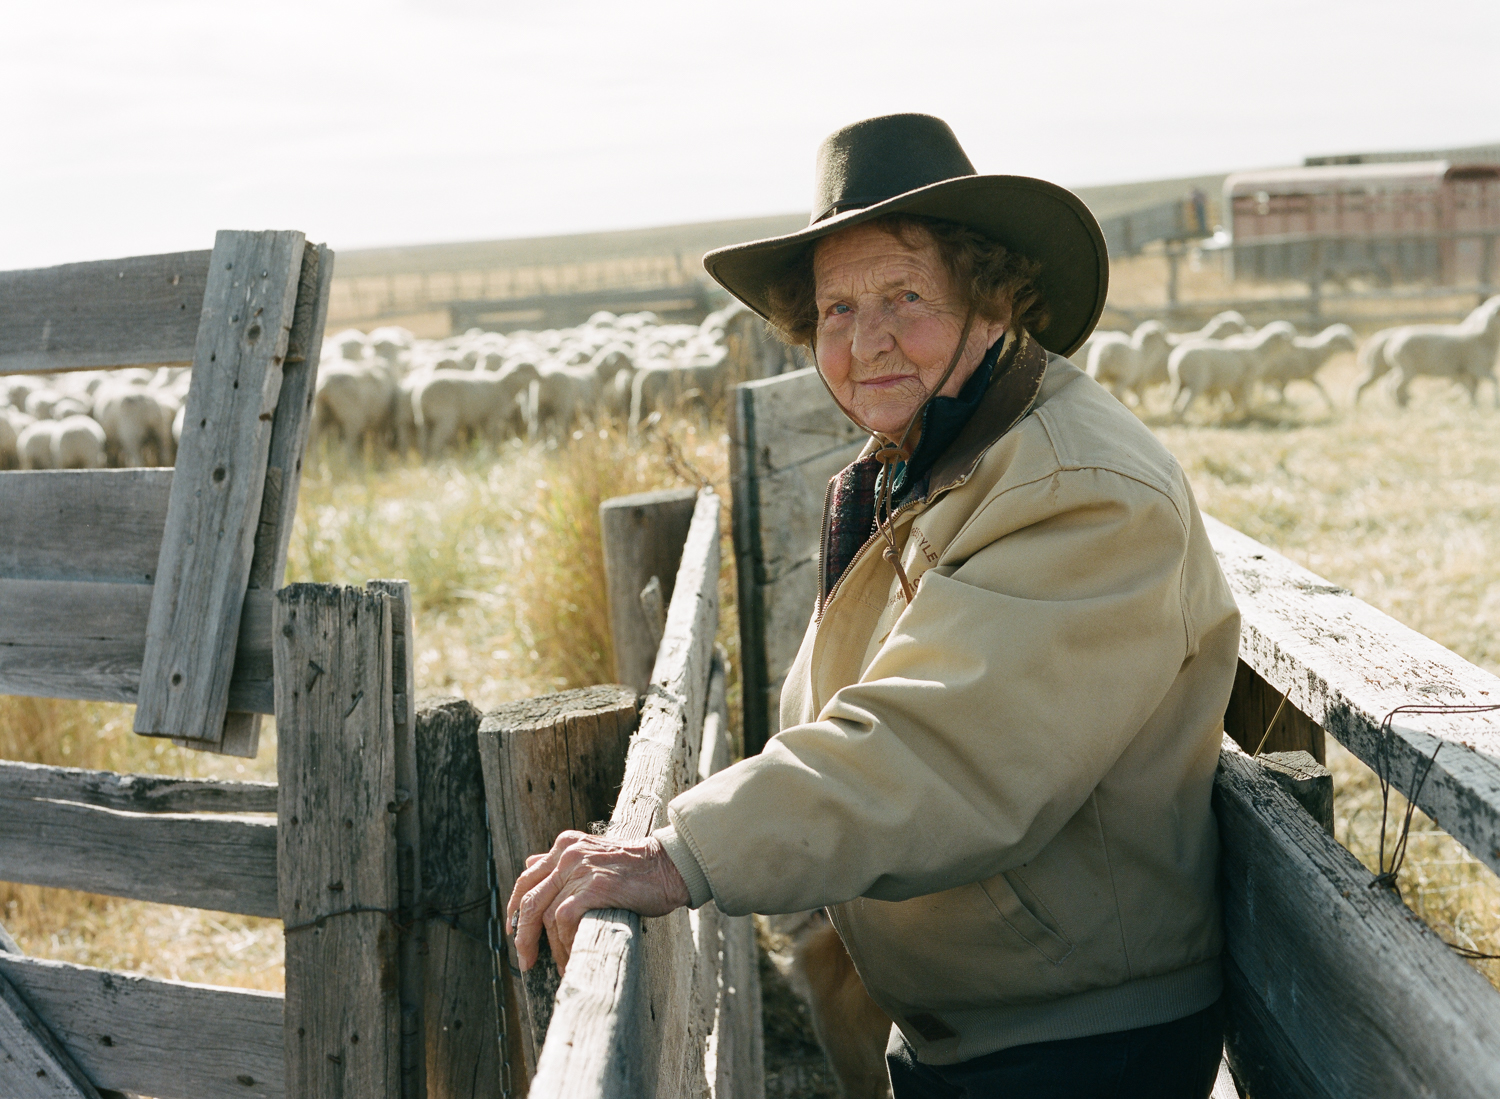 Mickey Thoman is a cowgirl, mentor and genuine leader. At 89 years old, she operates the W&M Thoman ranch with her three daughters. Together, the Thoman women run a sheep and cattle operation, as well as raise thoroughbred-quarter horses in Sweetwater County, Wyoming.